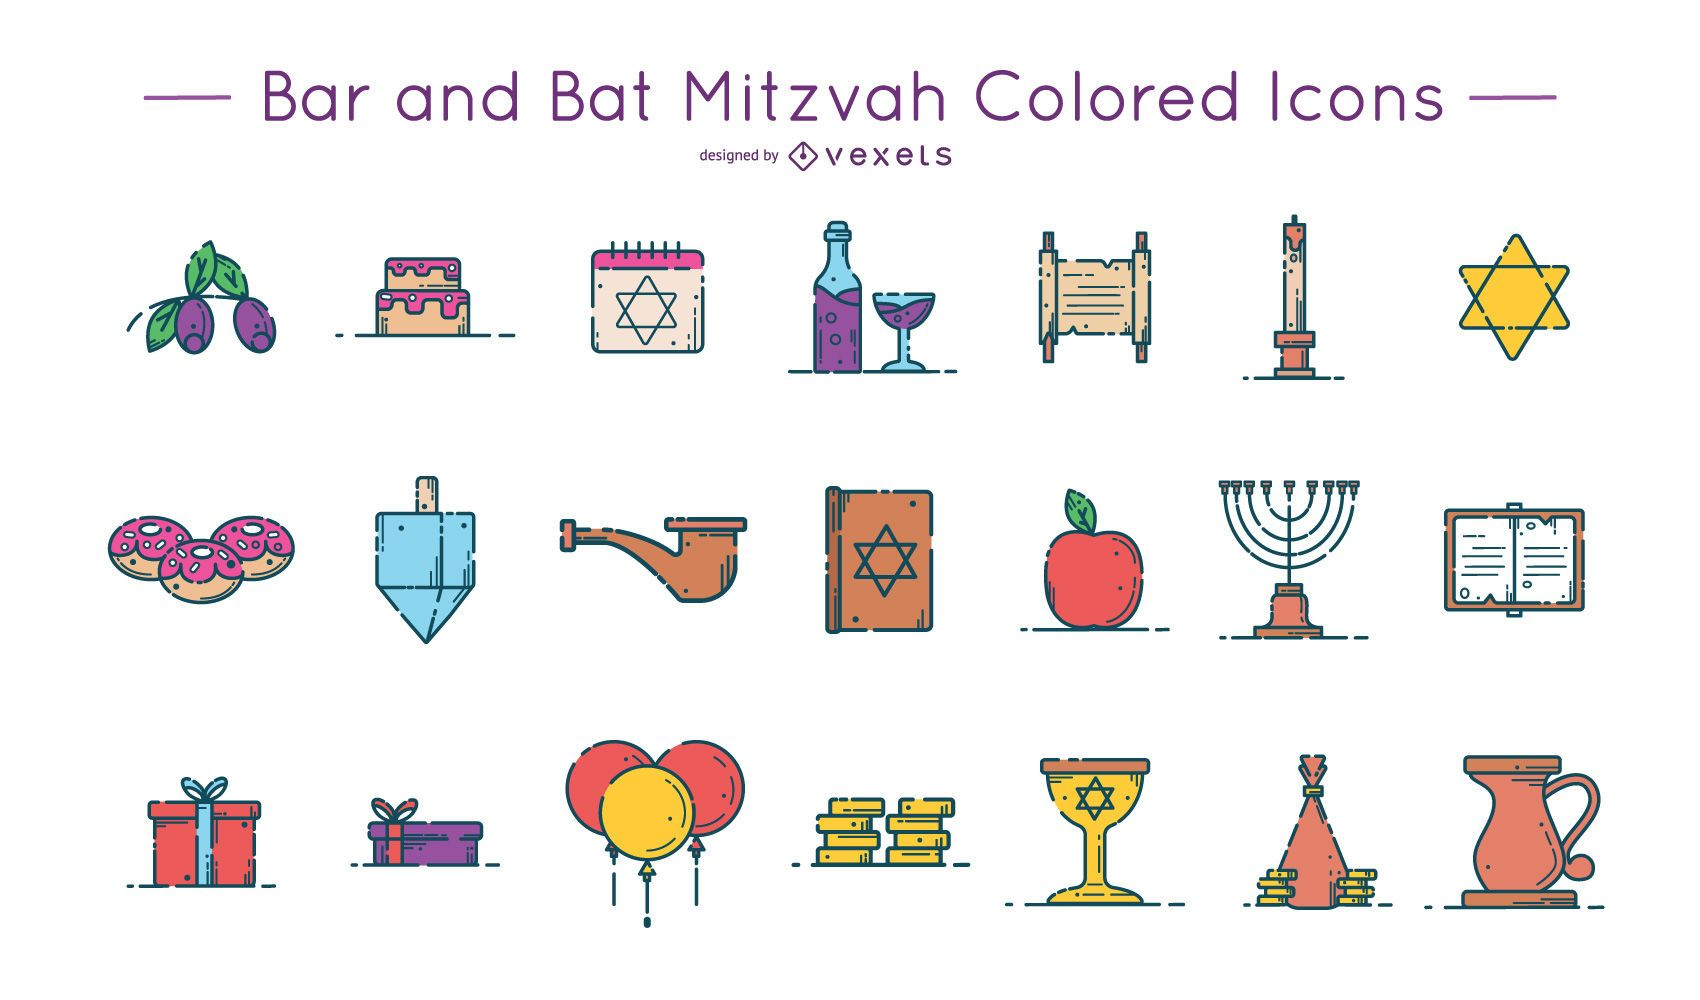 Bar and Bat Mitzvah Colored Icons Pack